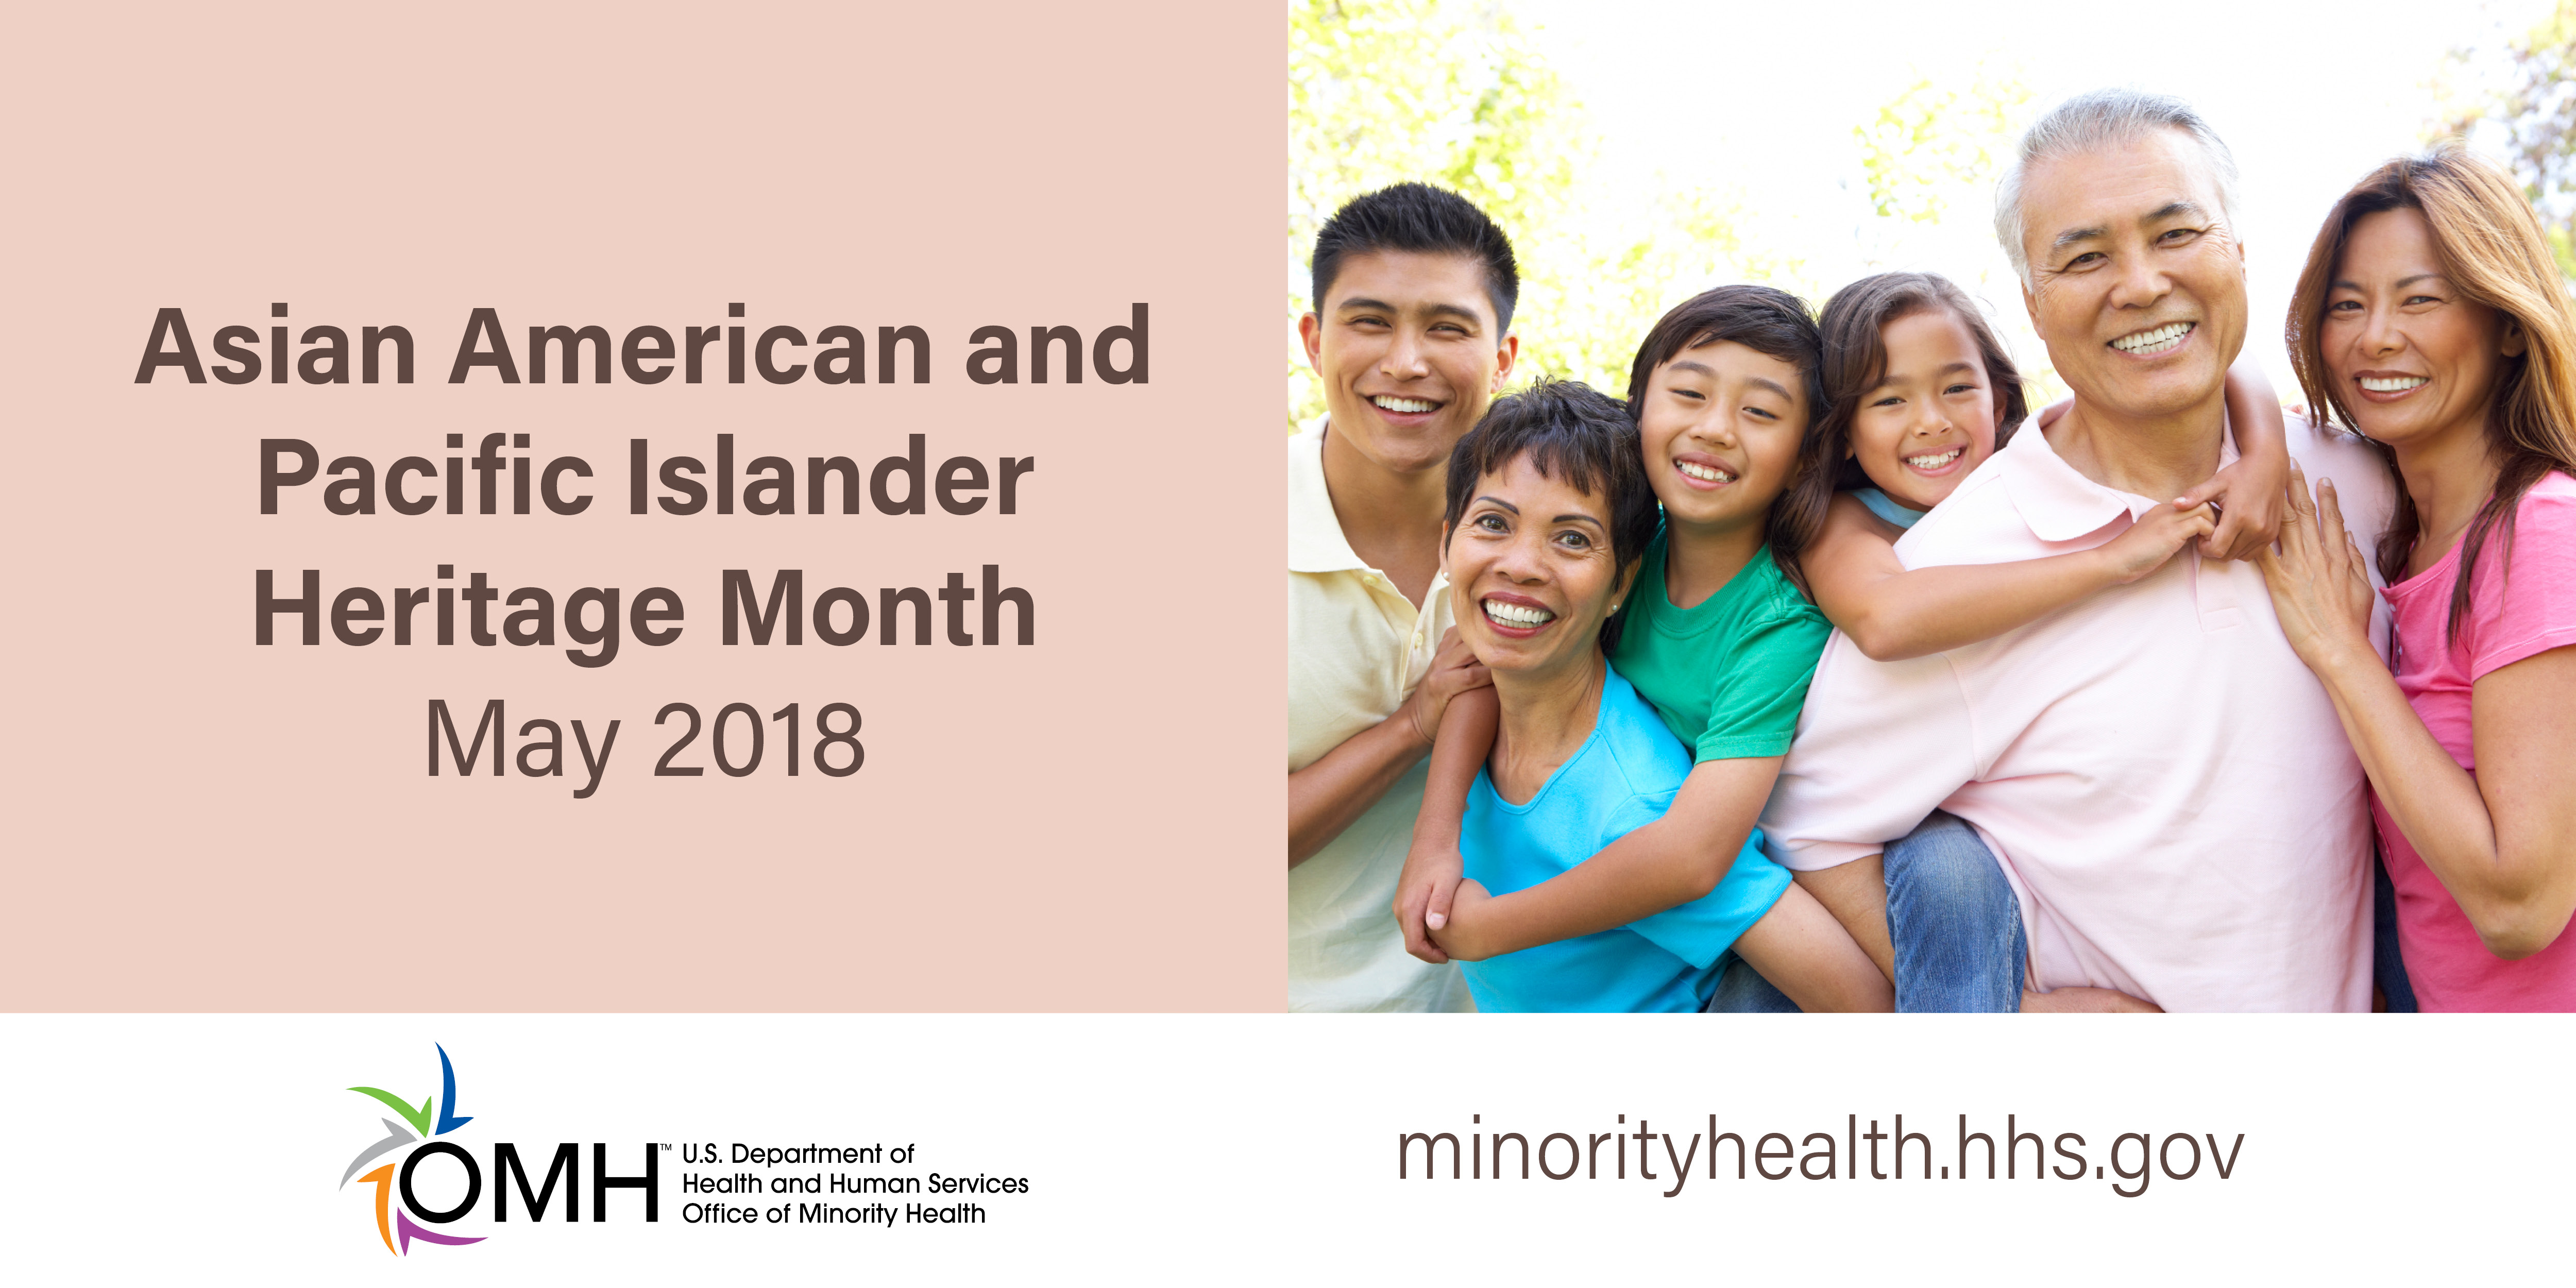 Asian American and Pacific Islander Heritage Month 2018